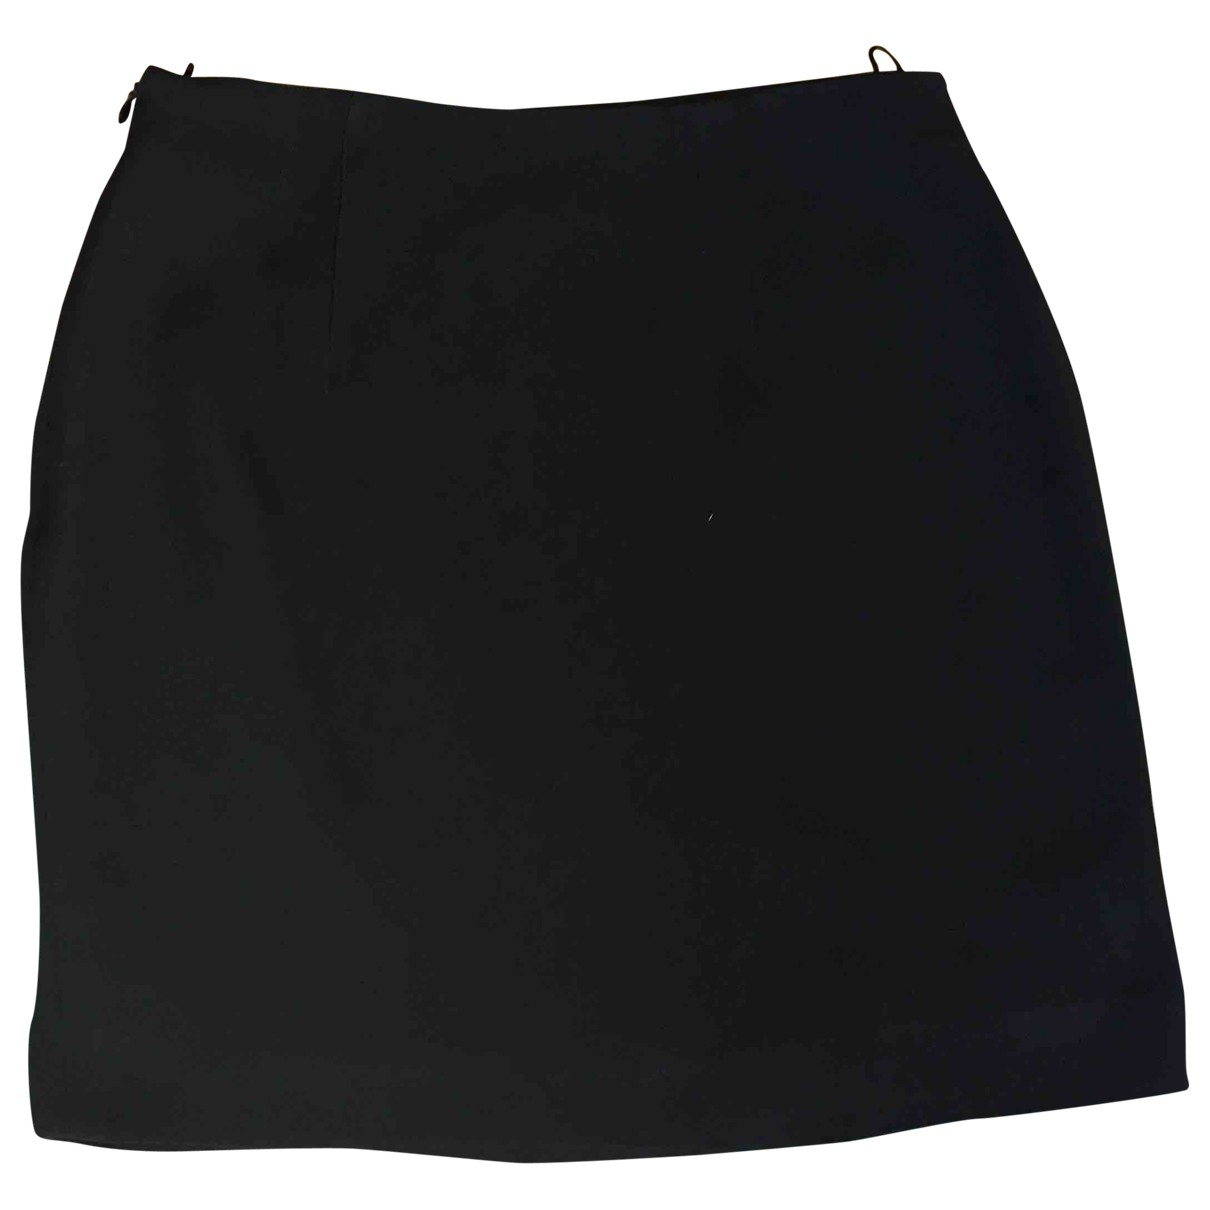 Moschino \N Black skirt for Women 44 IT